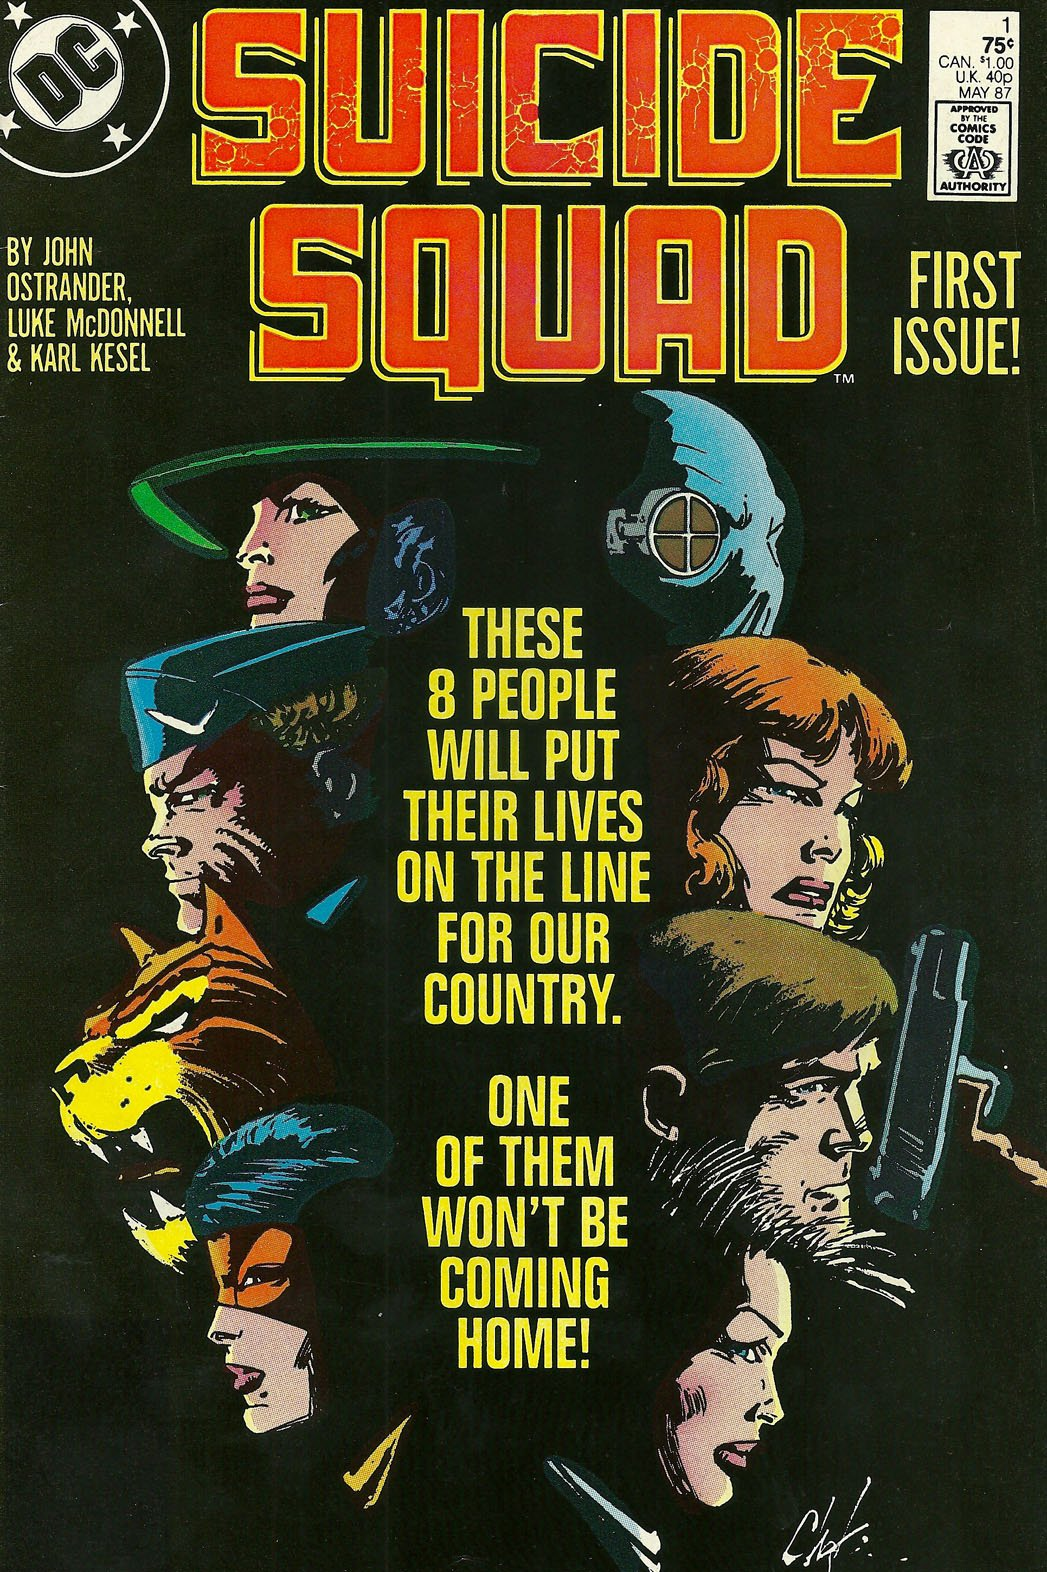 Two Big Questions Raised by Warners' 'Suicide Squad' Casting News